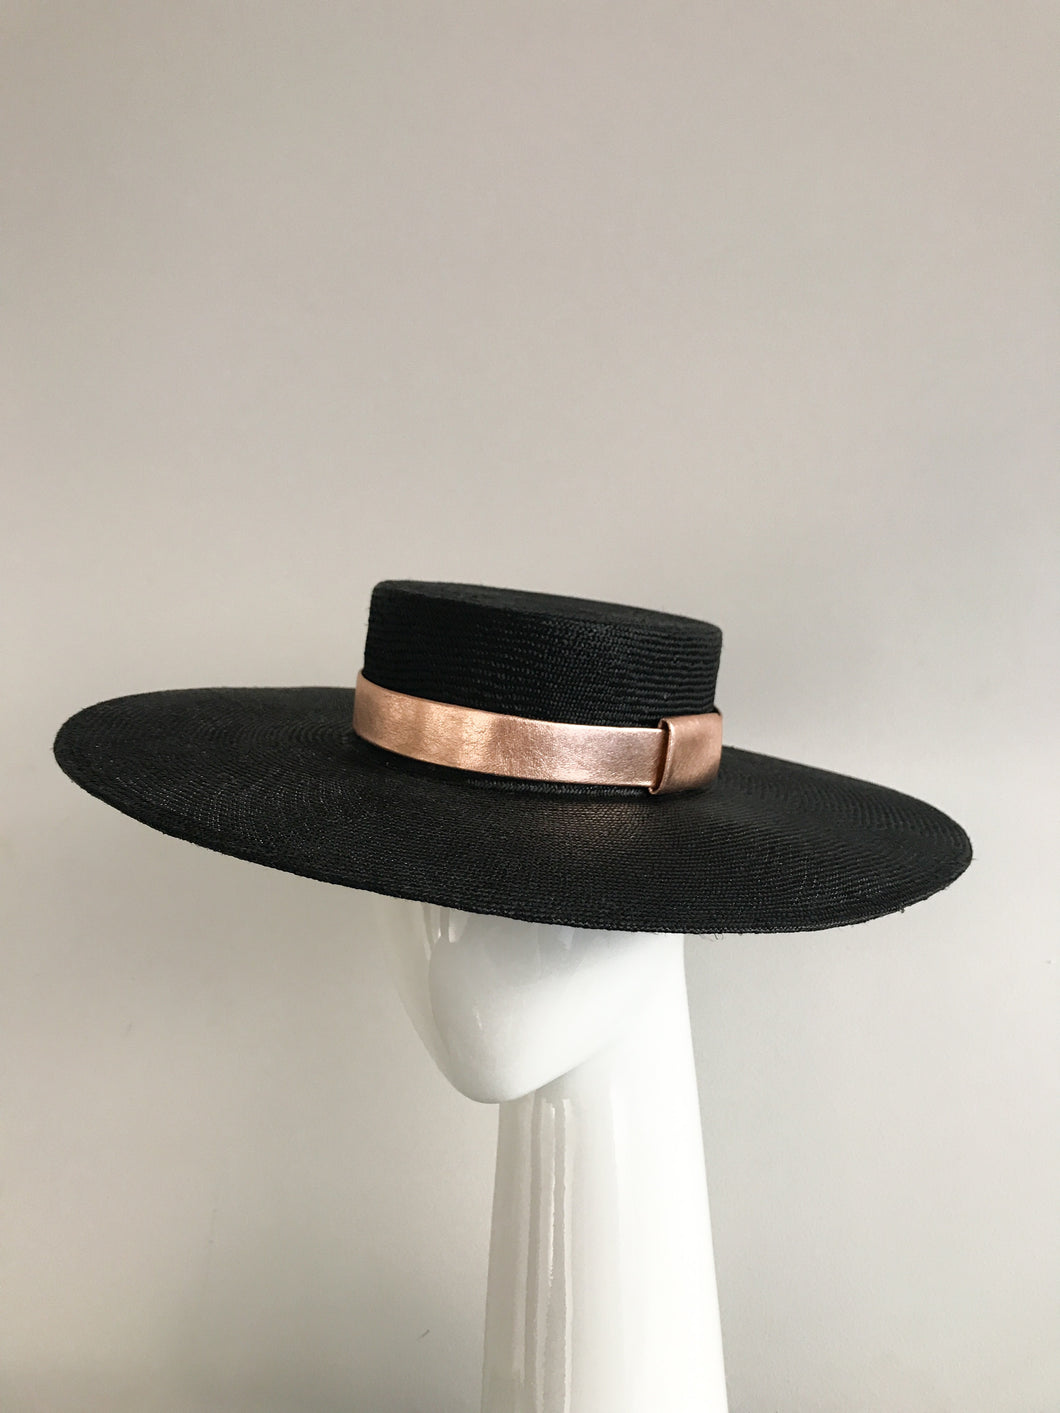 Black Wide Brimmed Straw Boater with Rose Gold Leather Band